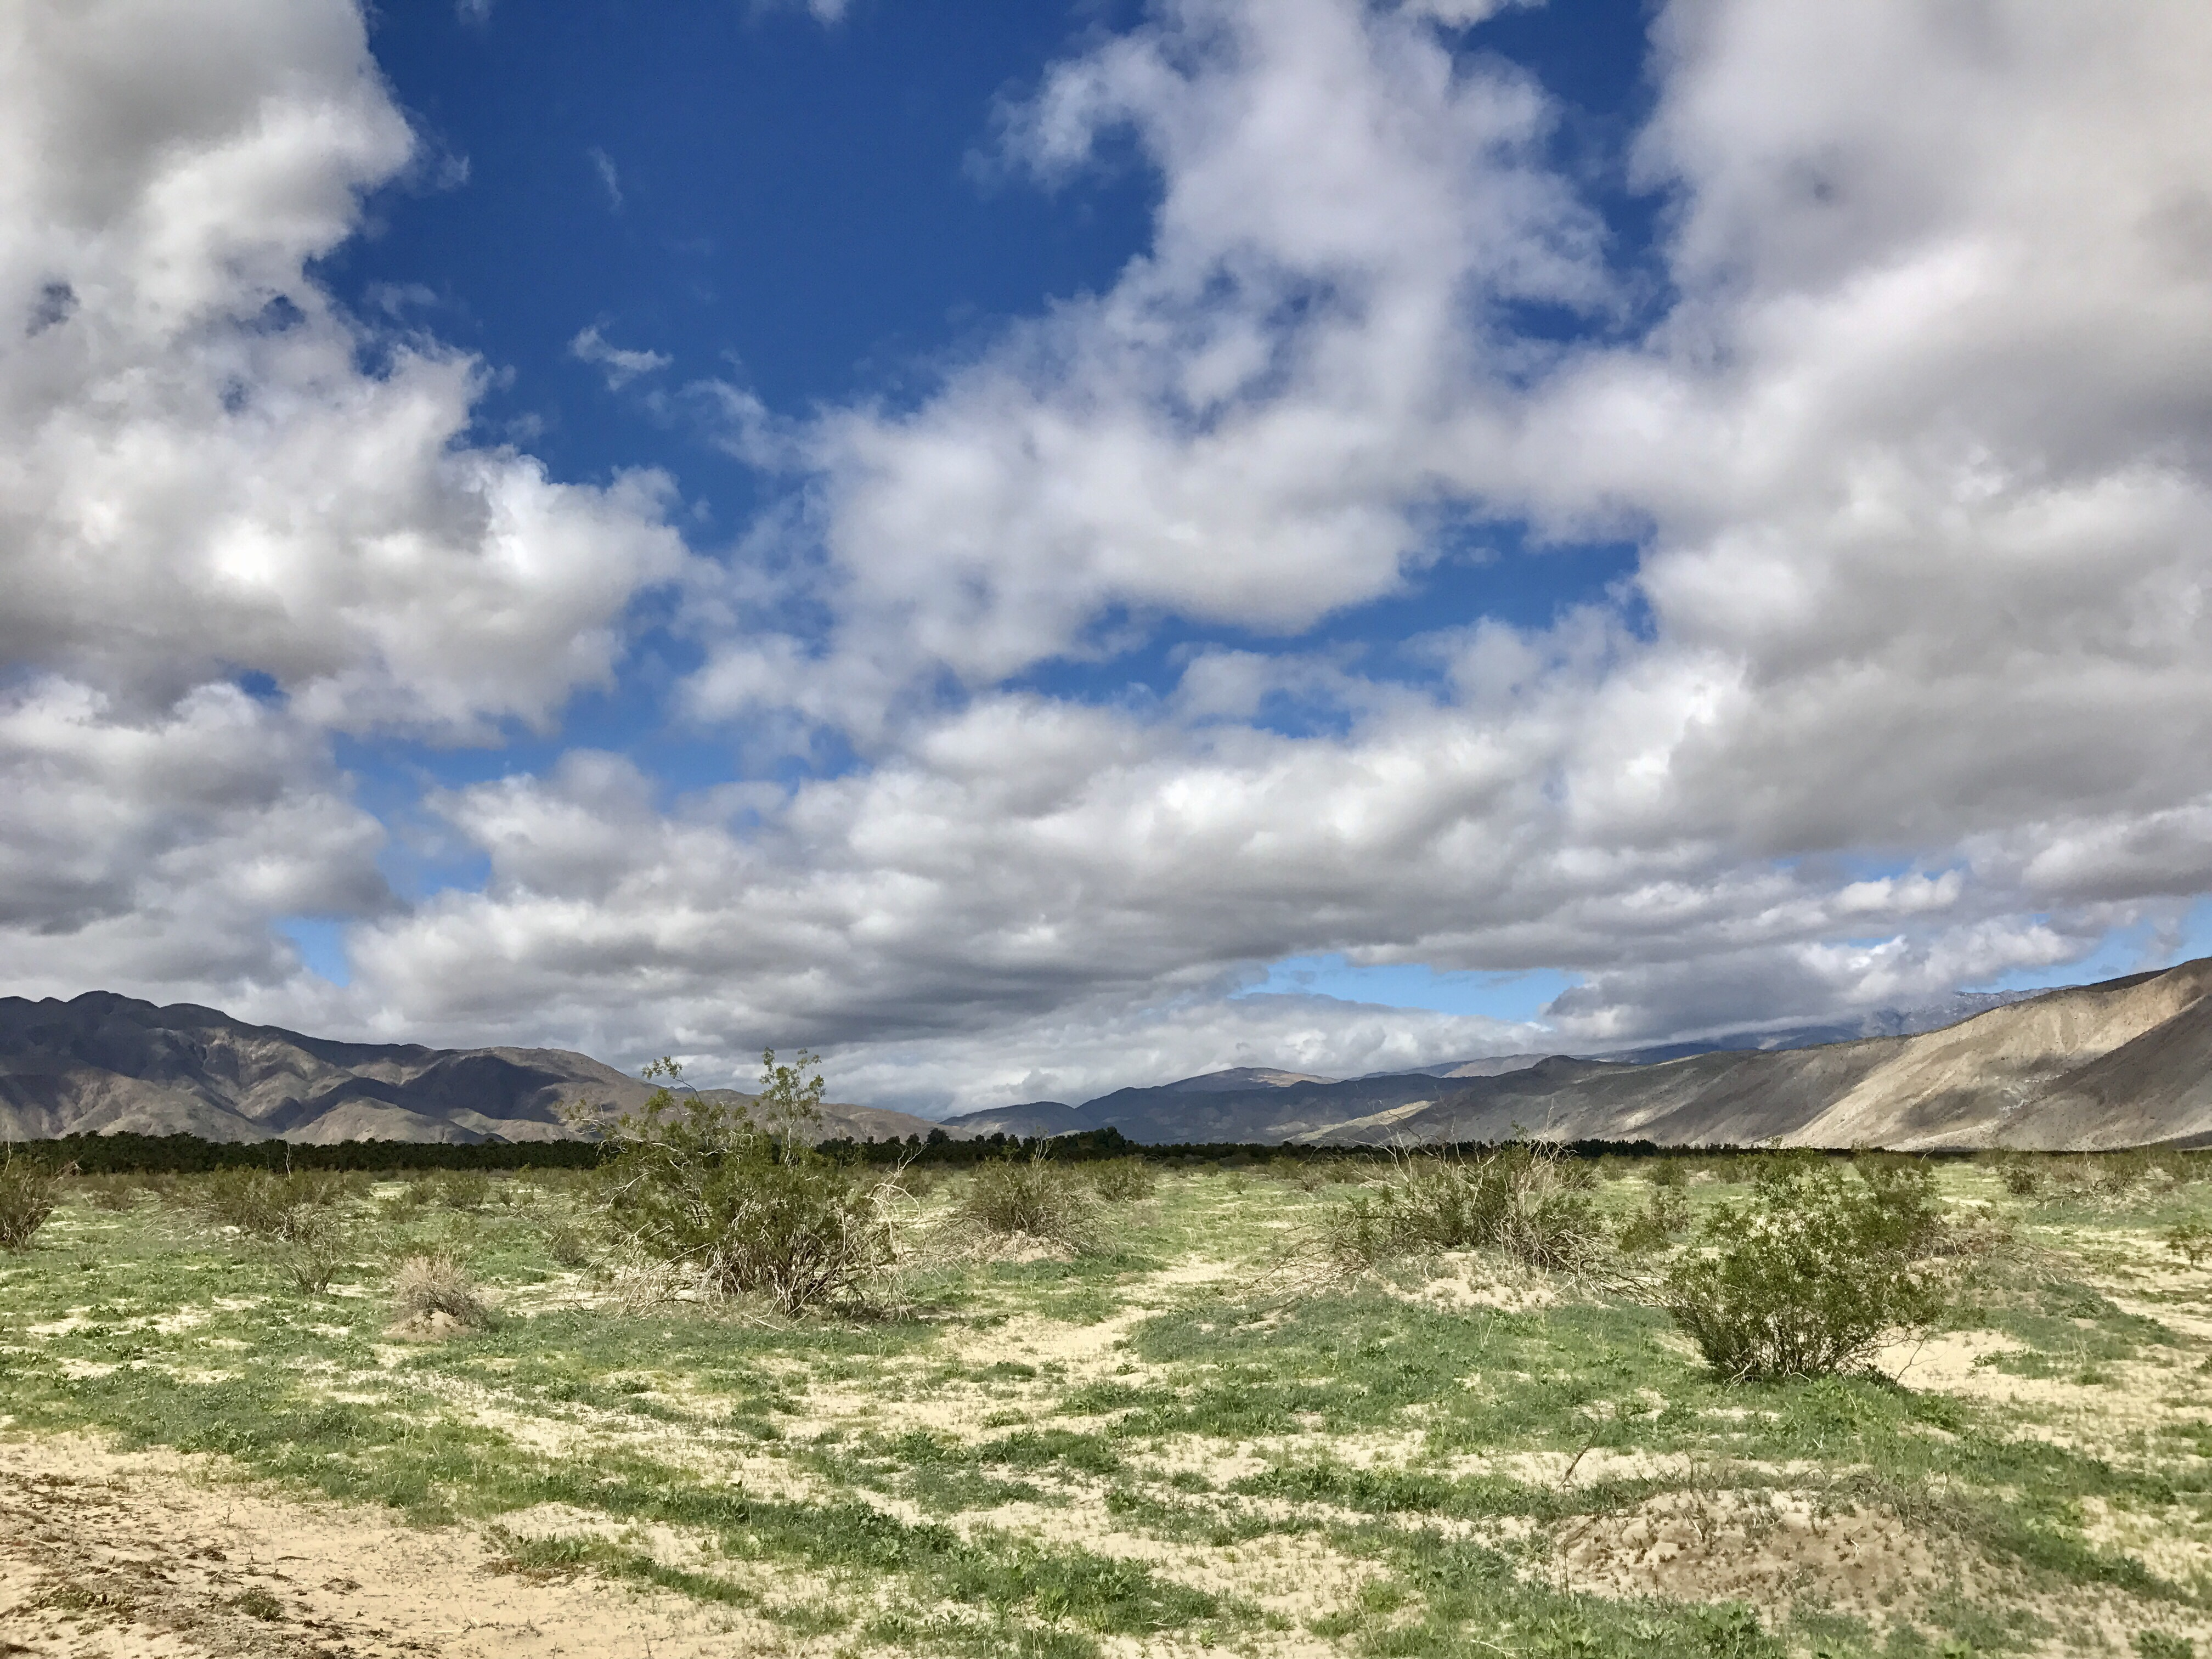 Anza Borrego Henderson Canyon Seeing Green A Super Bloom In Abdsp Travels With Callie